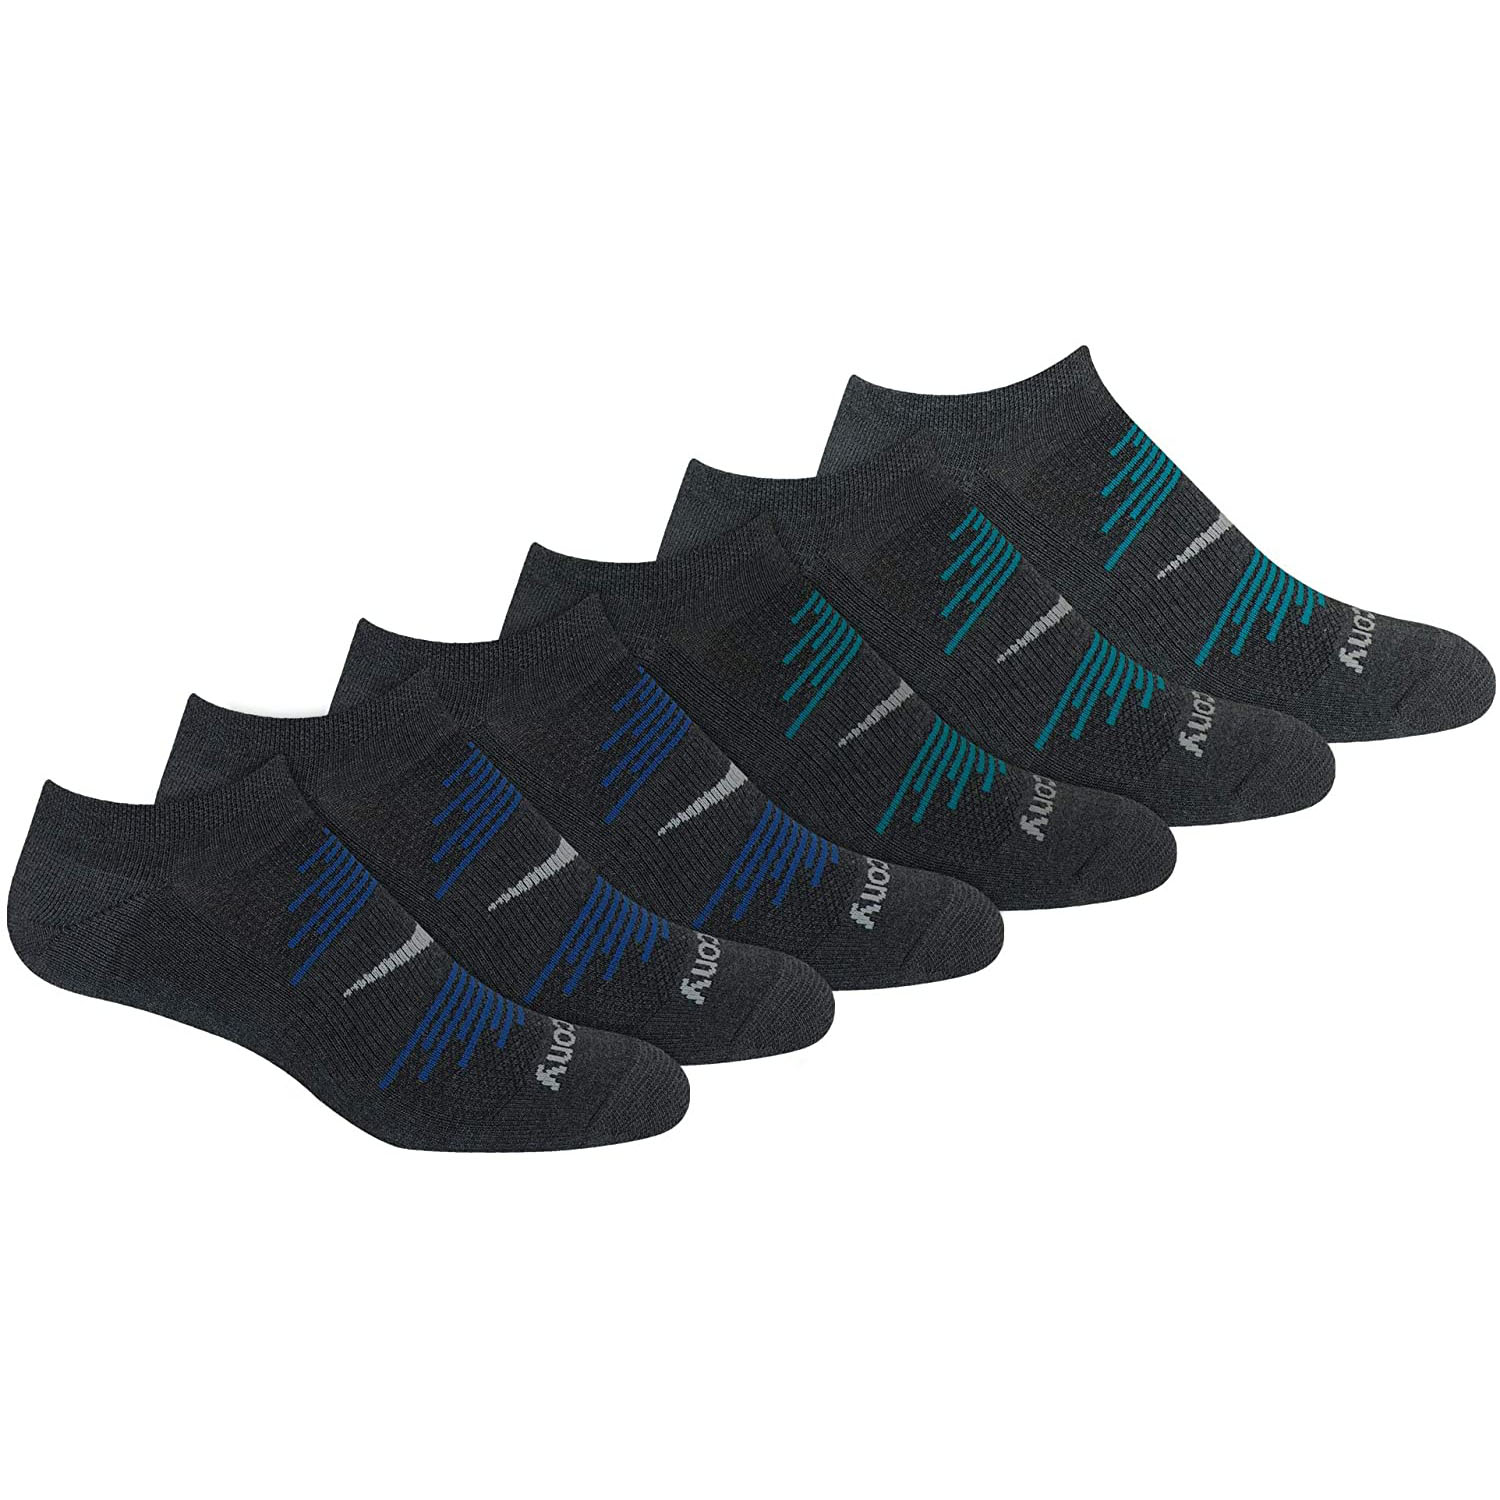 Saucony Men's Ventilating Performance No-Show Socks